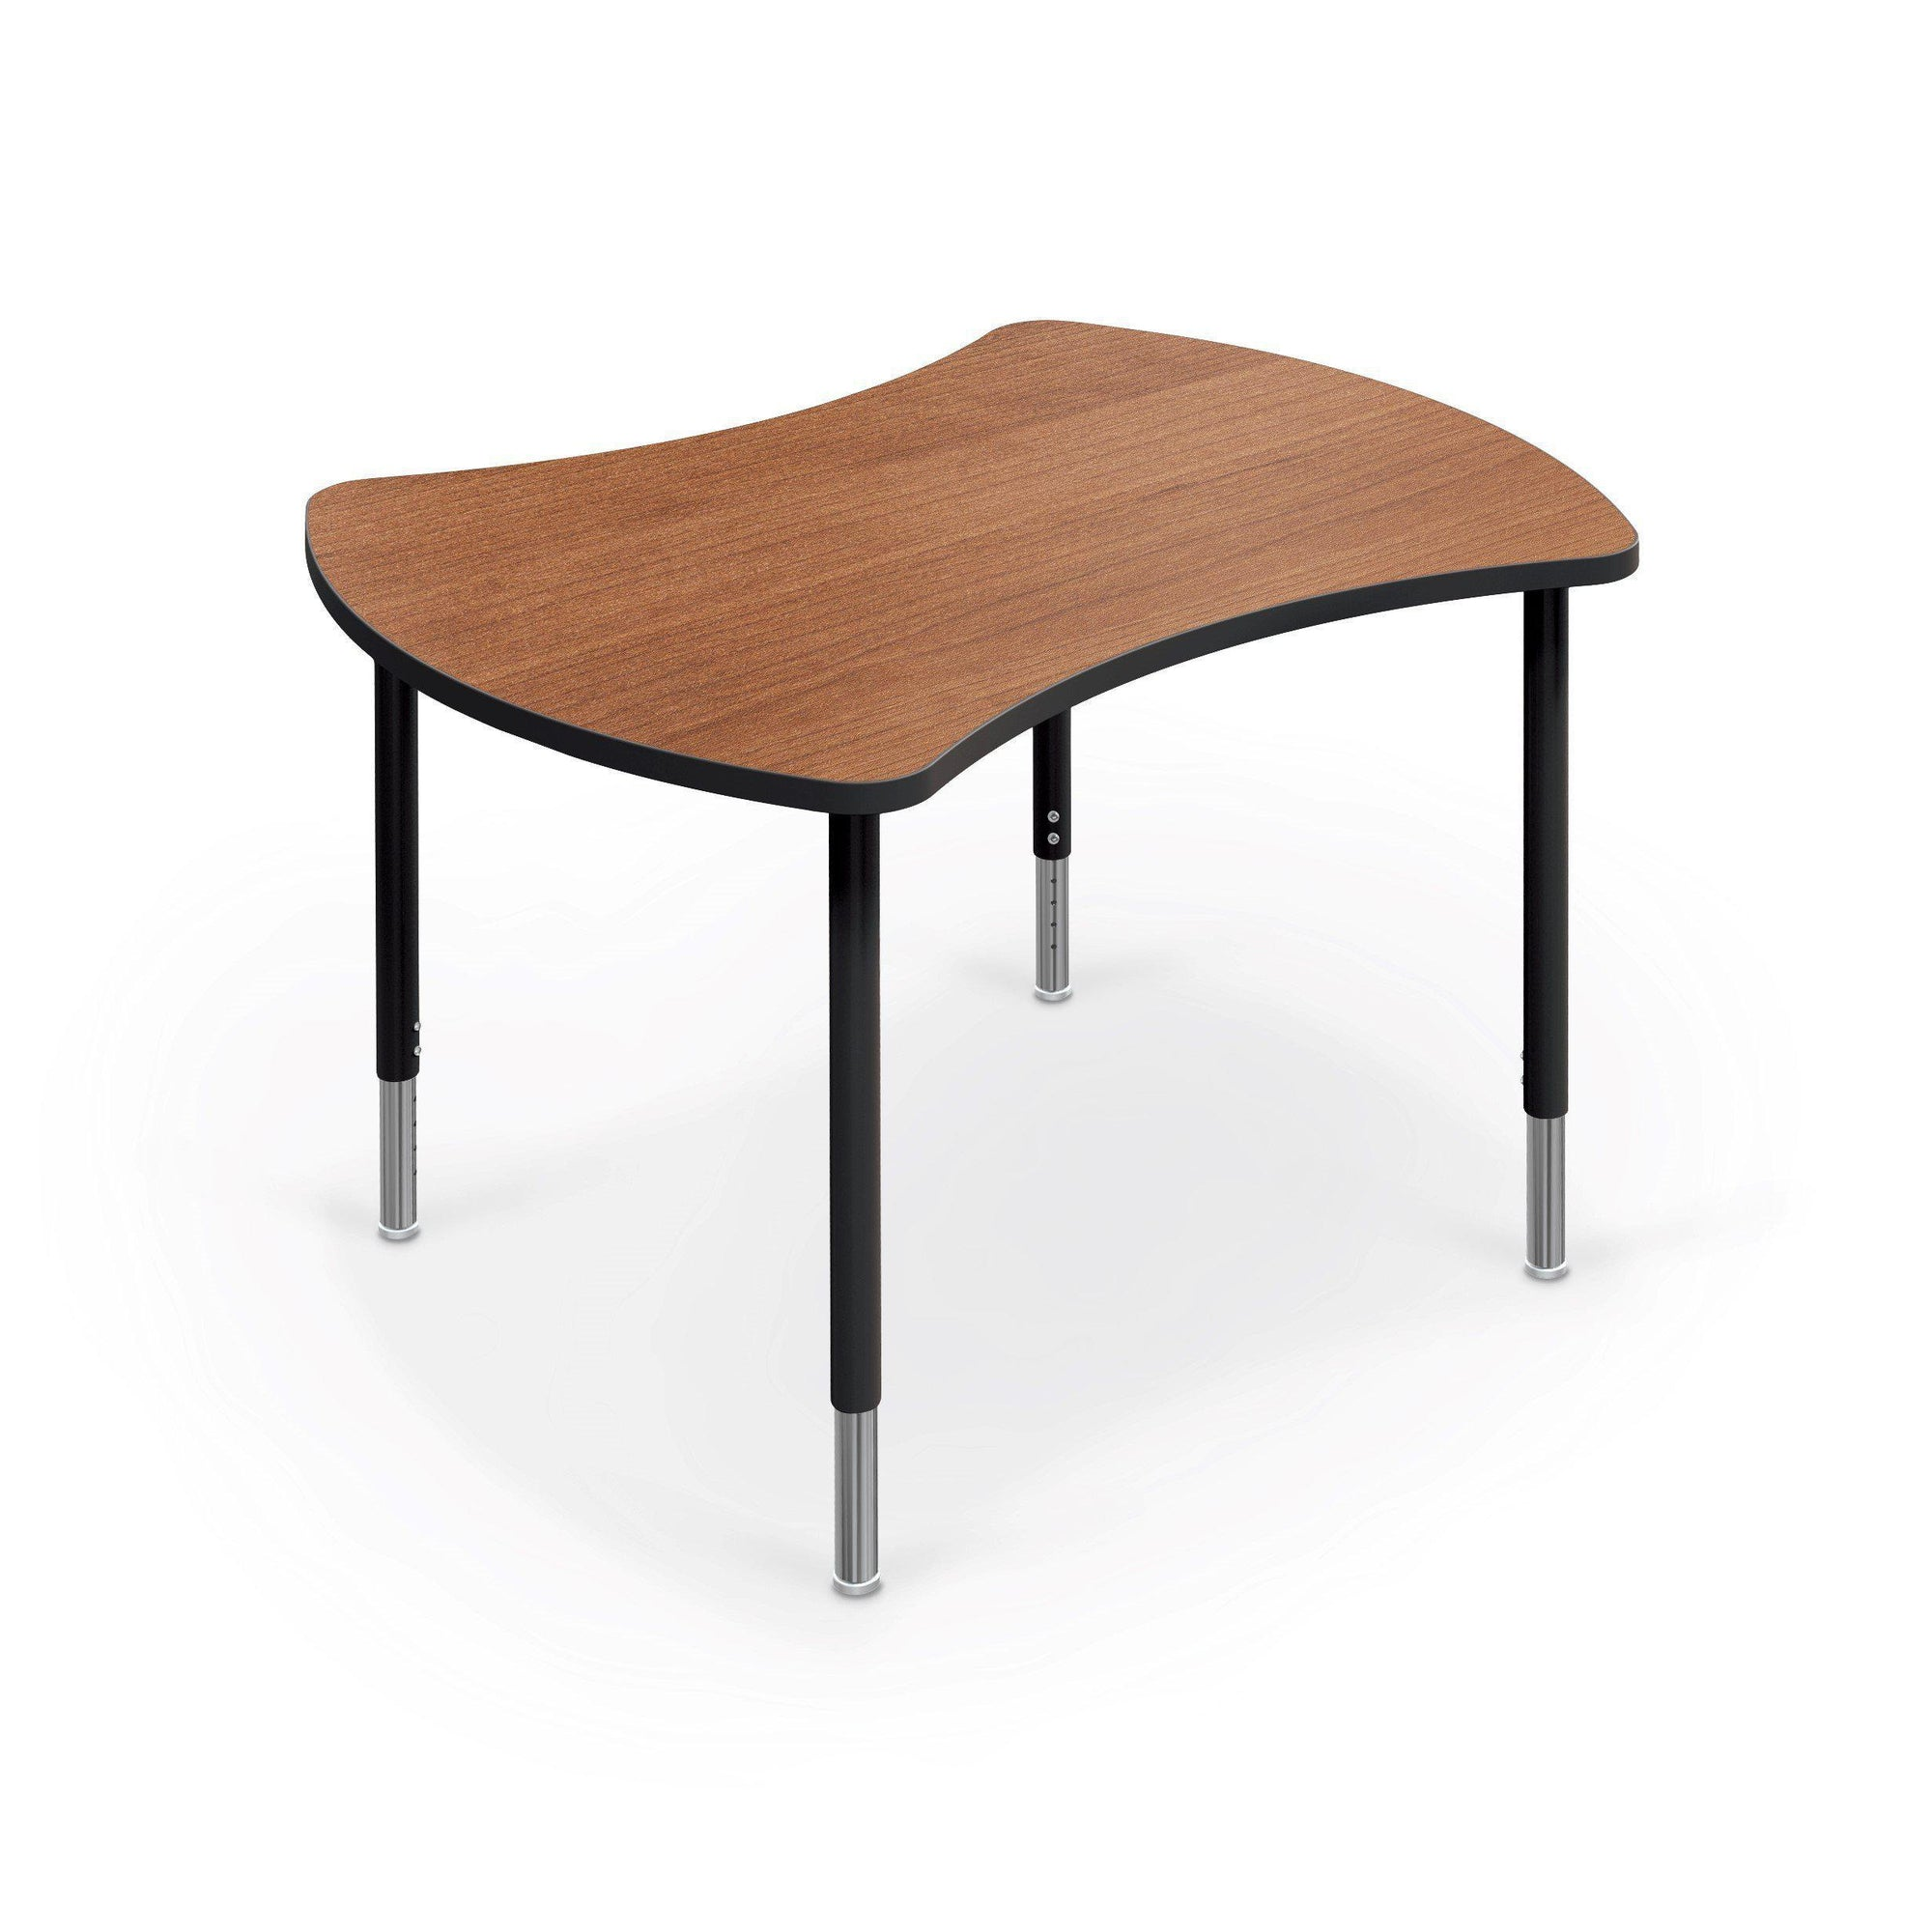 Hierarchy Quad Desk and Table-Desks-Small-Amber Cherry with Black Edgeband-Black